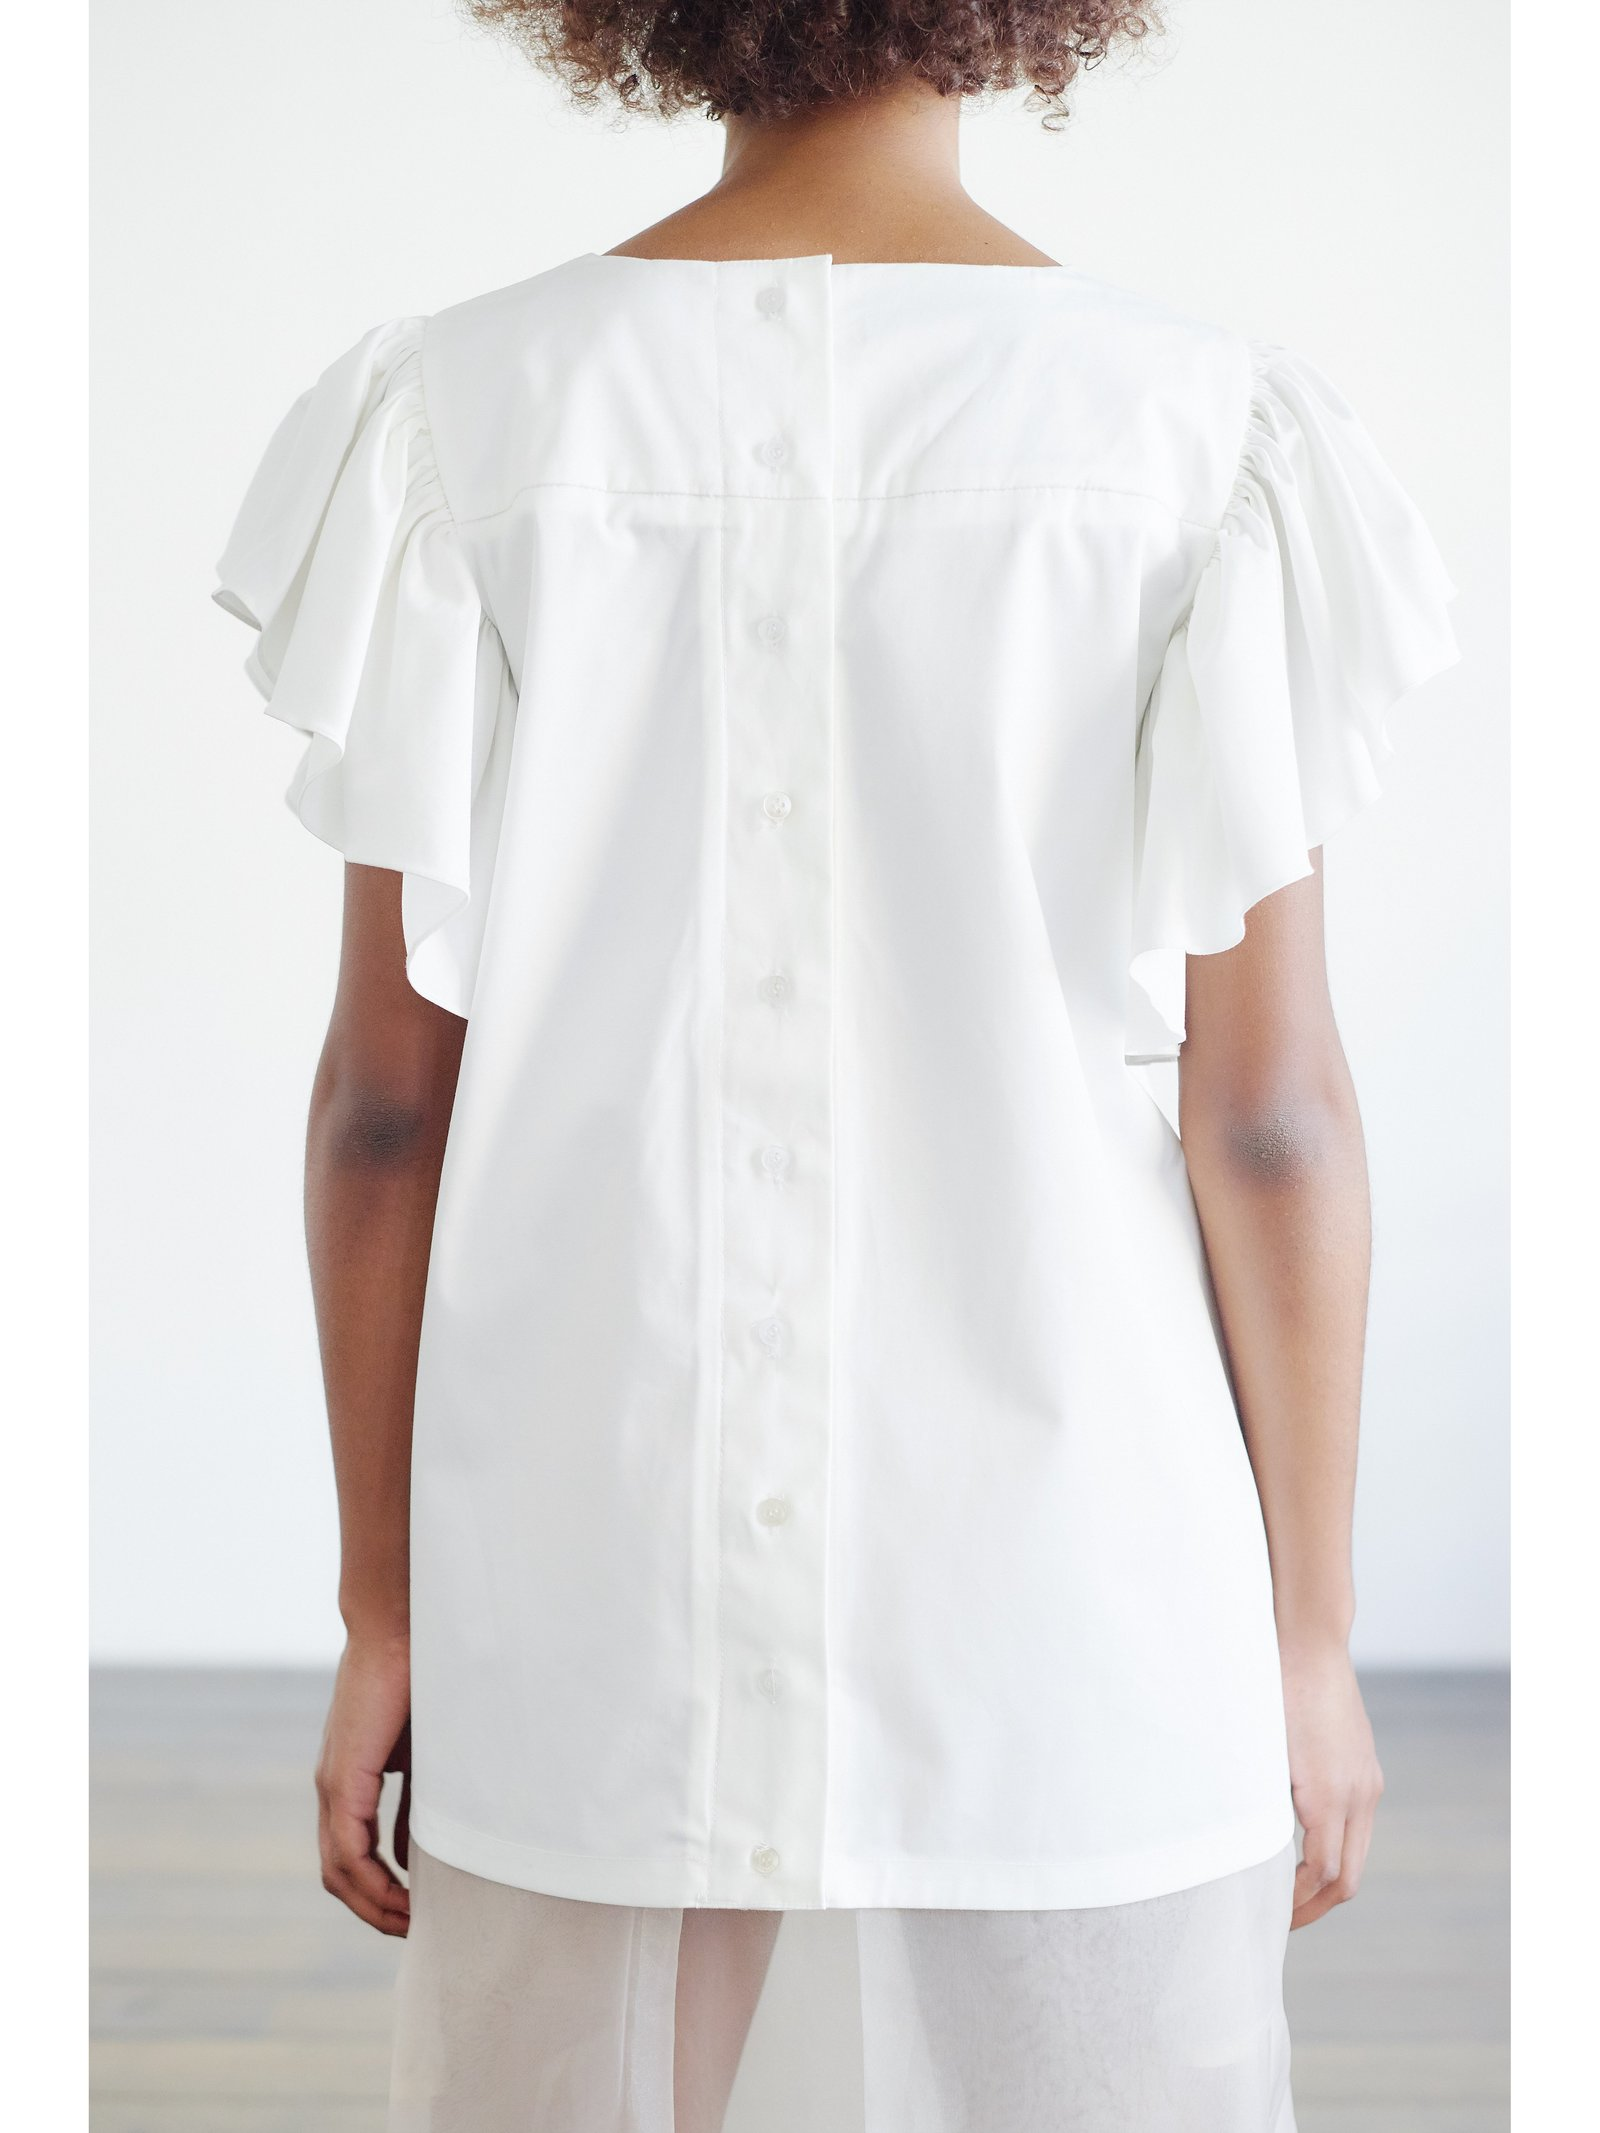 HB By Hanna Baranava White Shirt